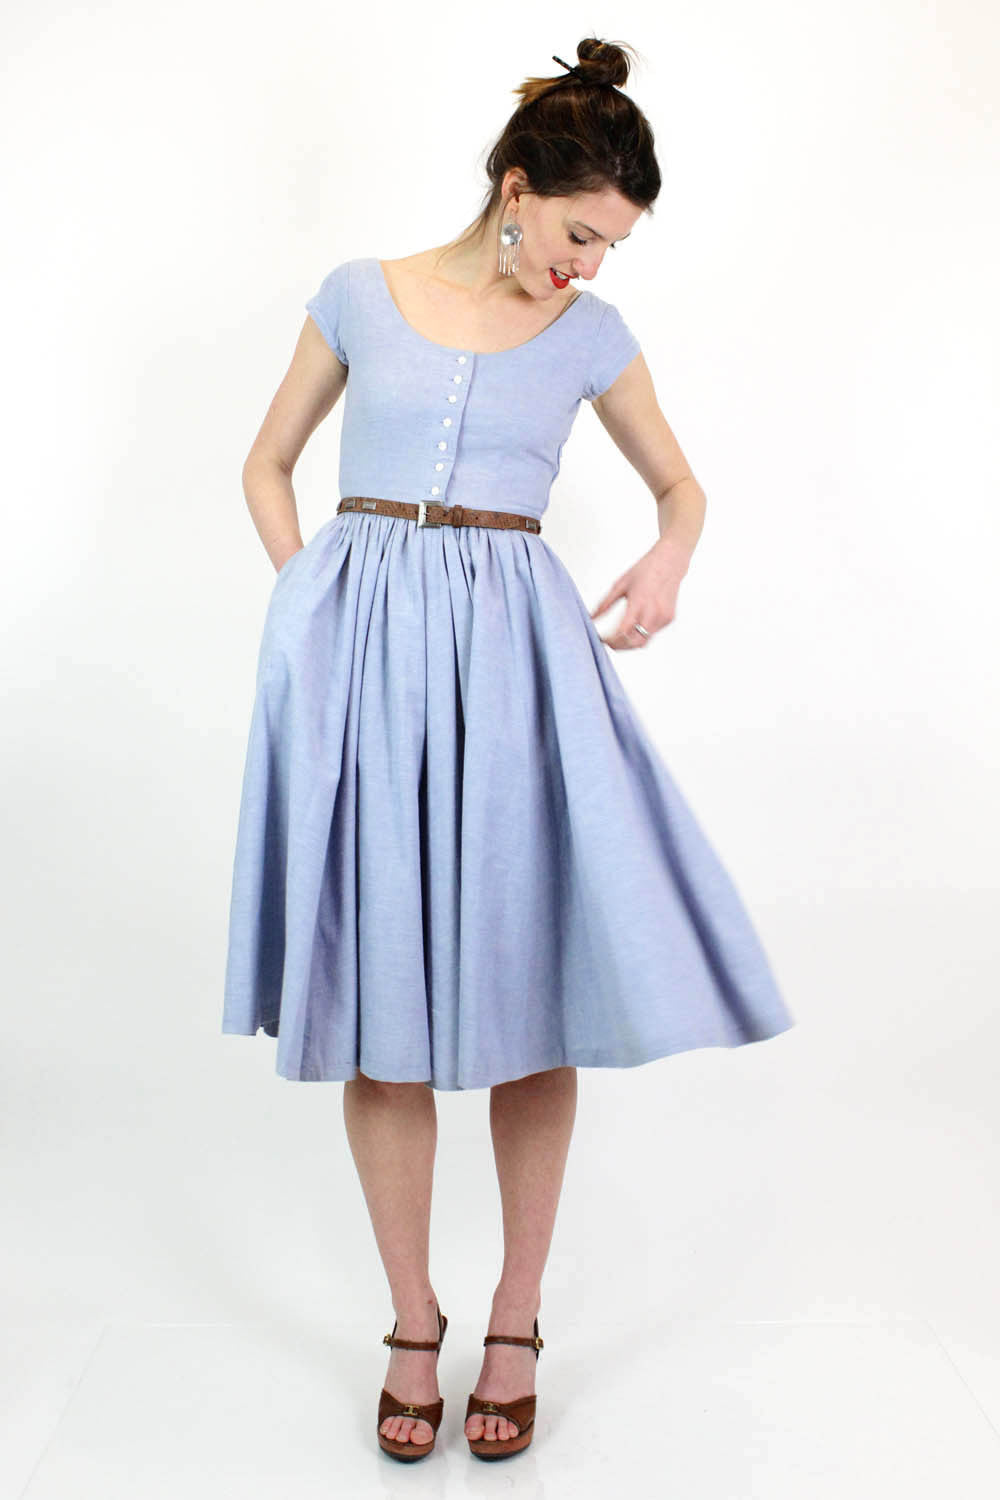 Sky Blue Cotton Fit & Flare Dress XS